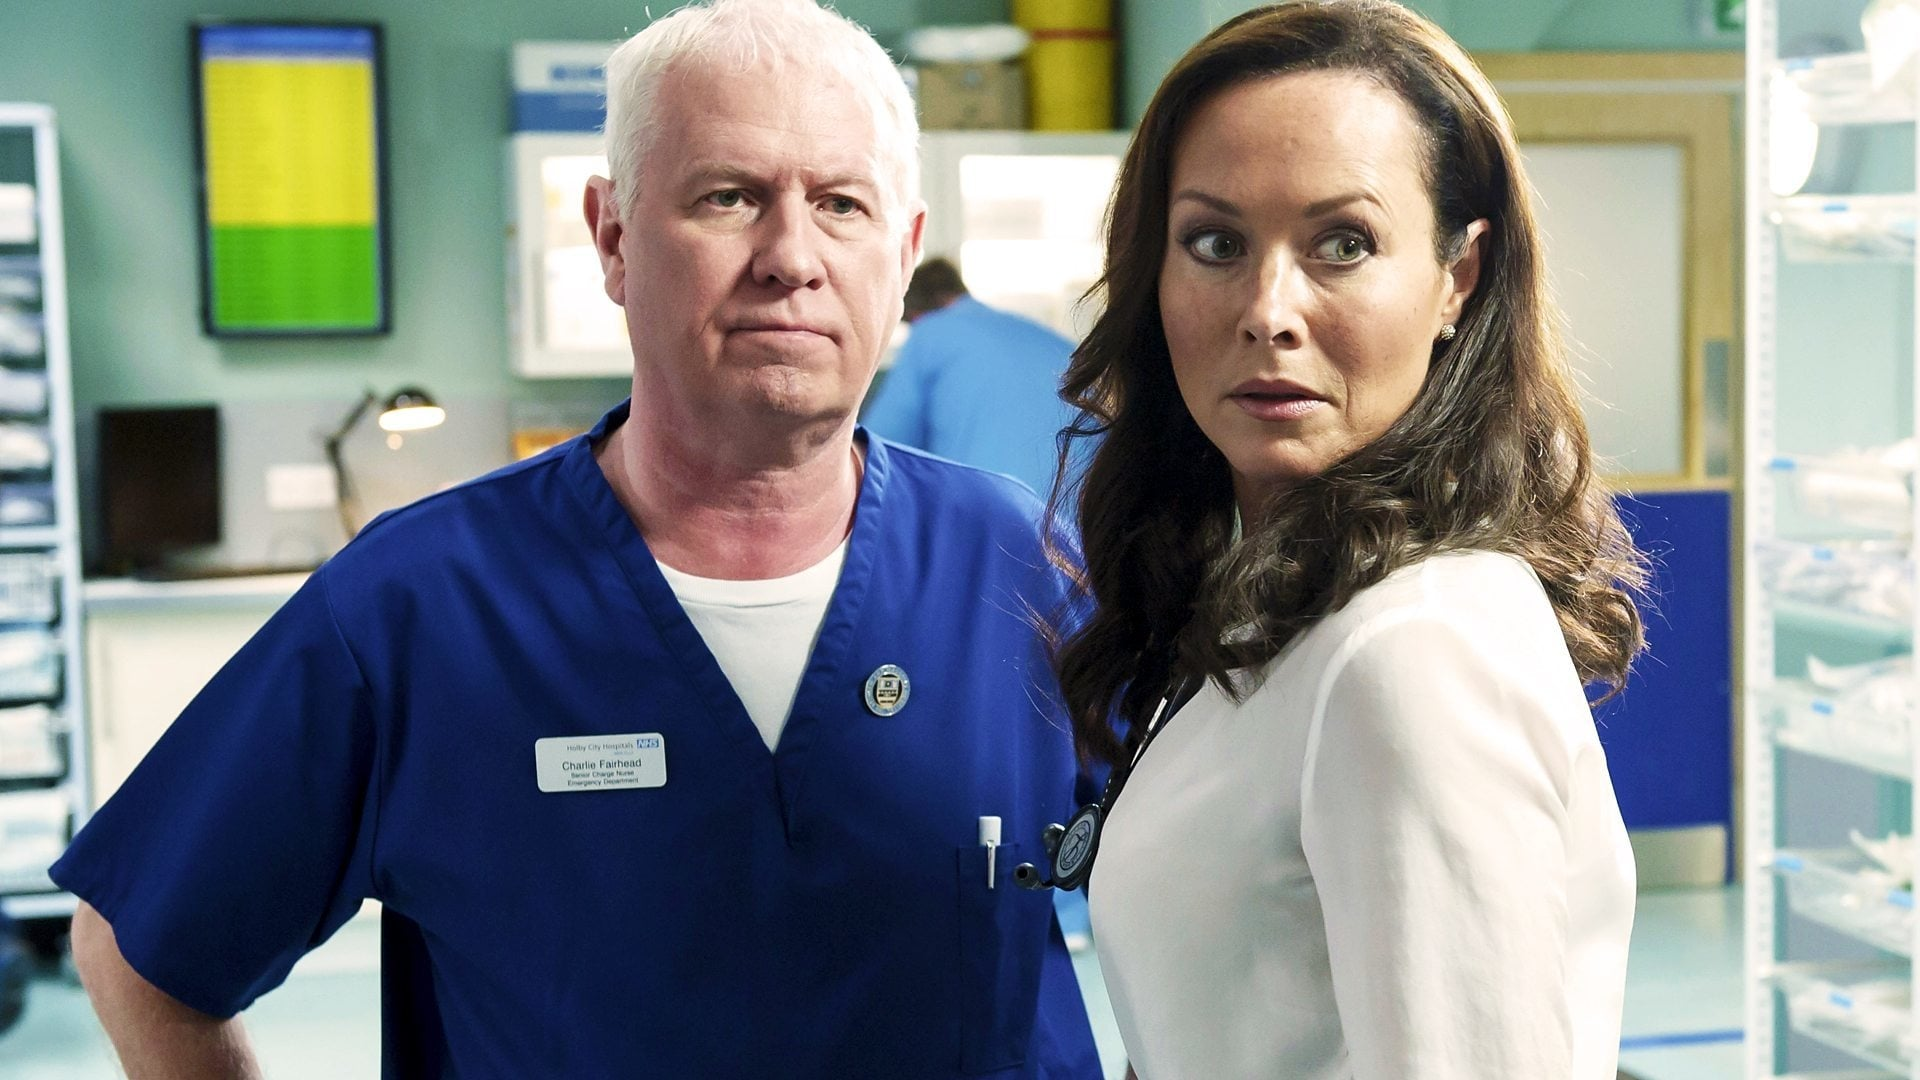 Casualty - Season 29 Episode 15 : Next Year's Words